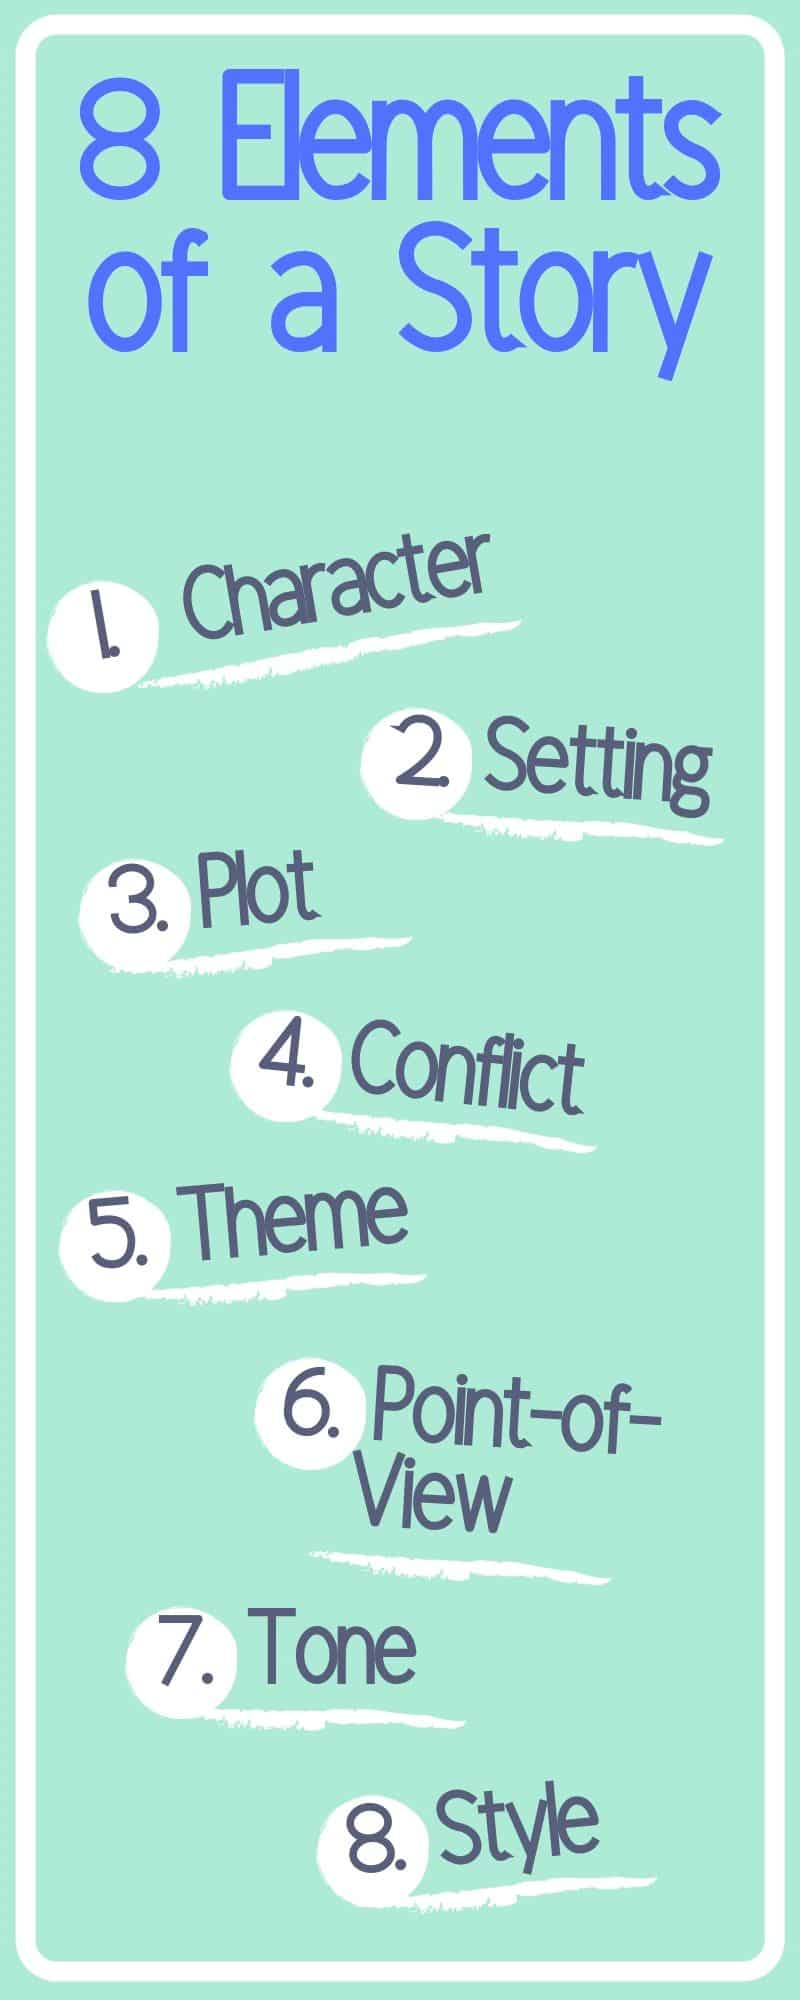 medium resolution of The 8 Elements of a Story - Explained for Students! (2021)